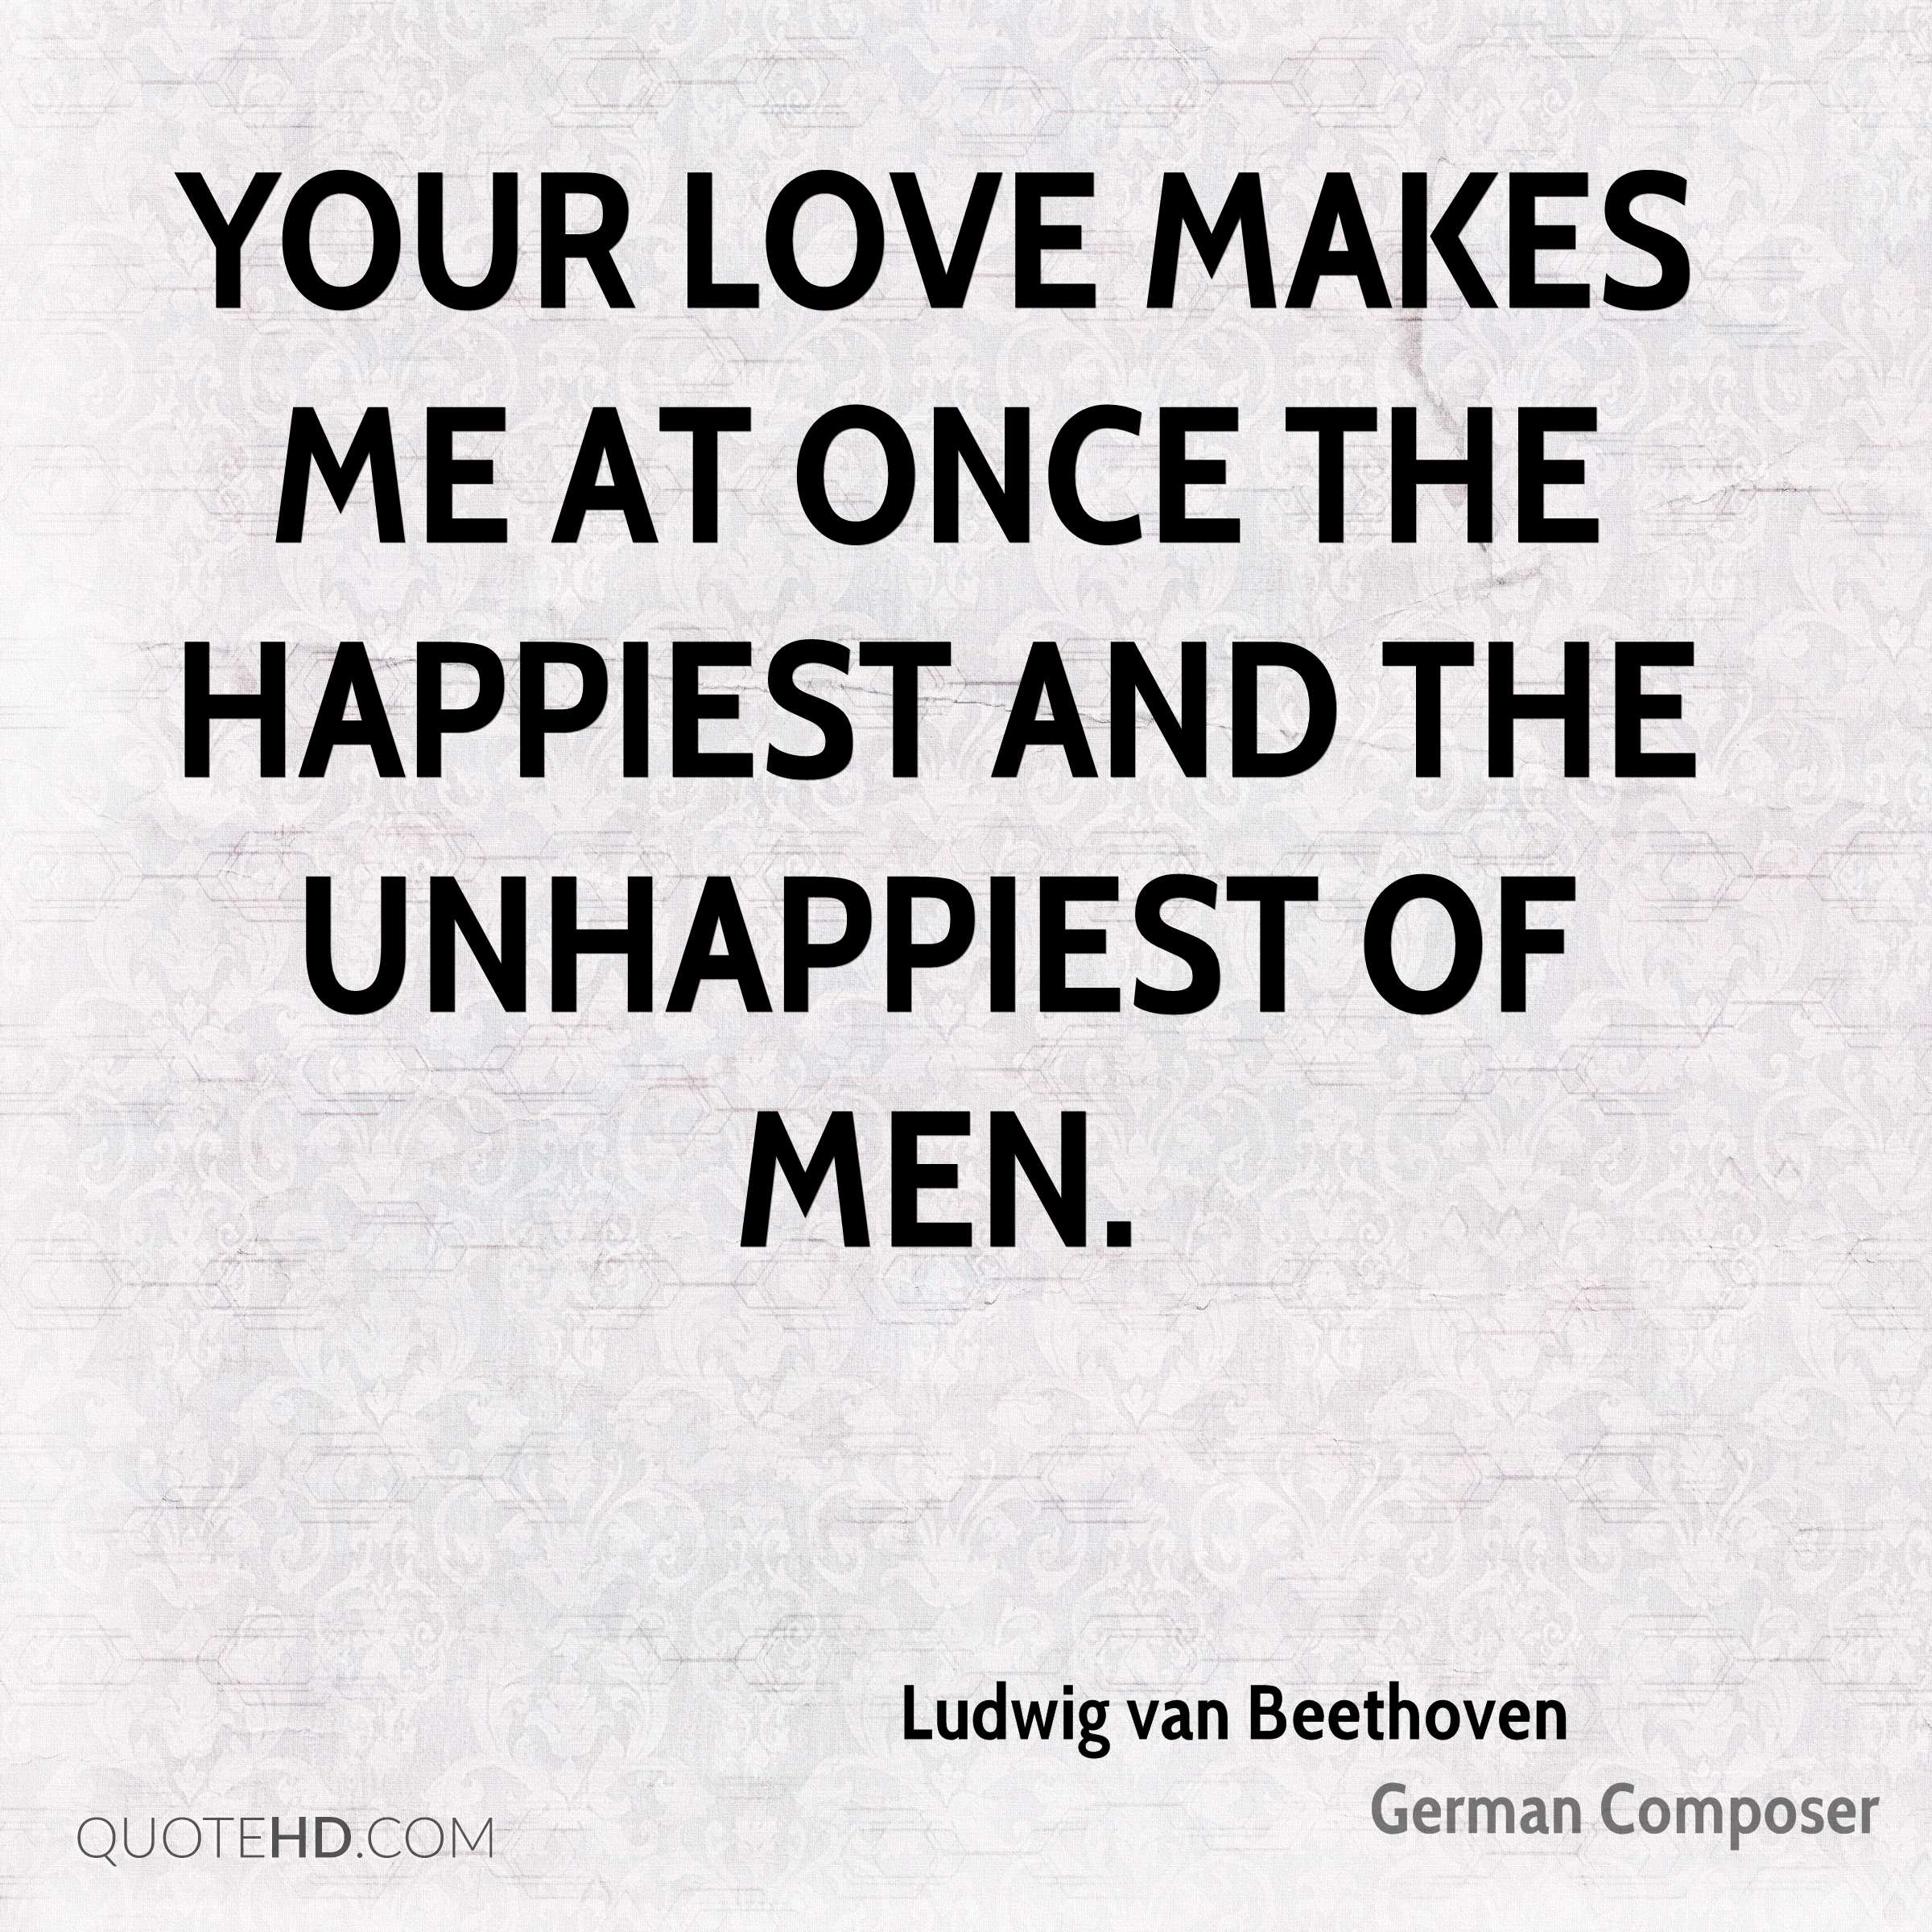 Ludwig van Beethoven Quotes | QuoteHD